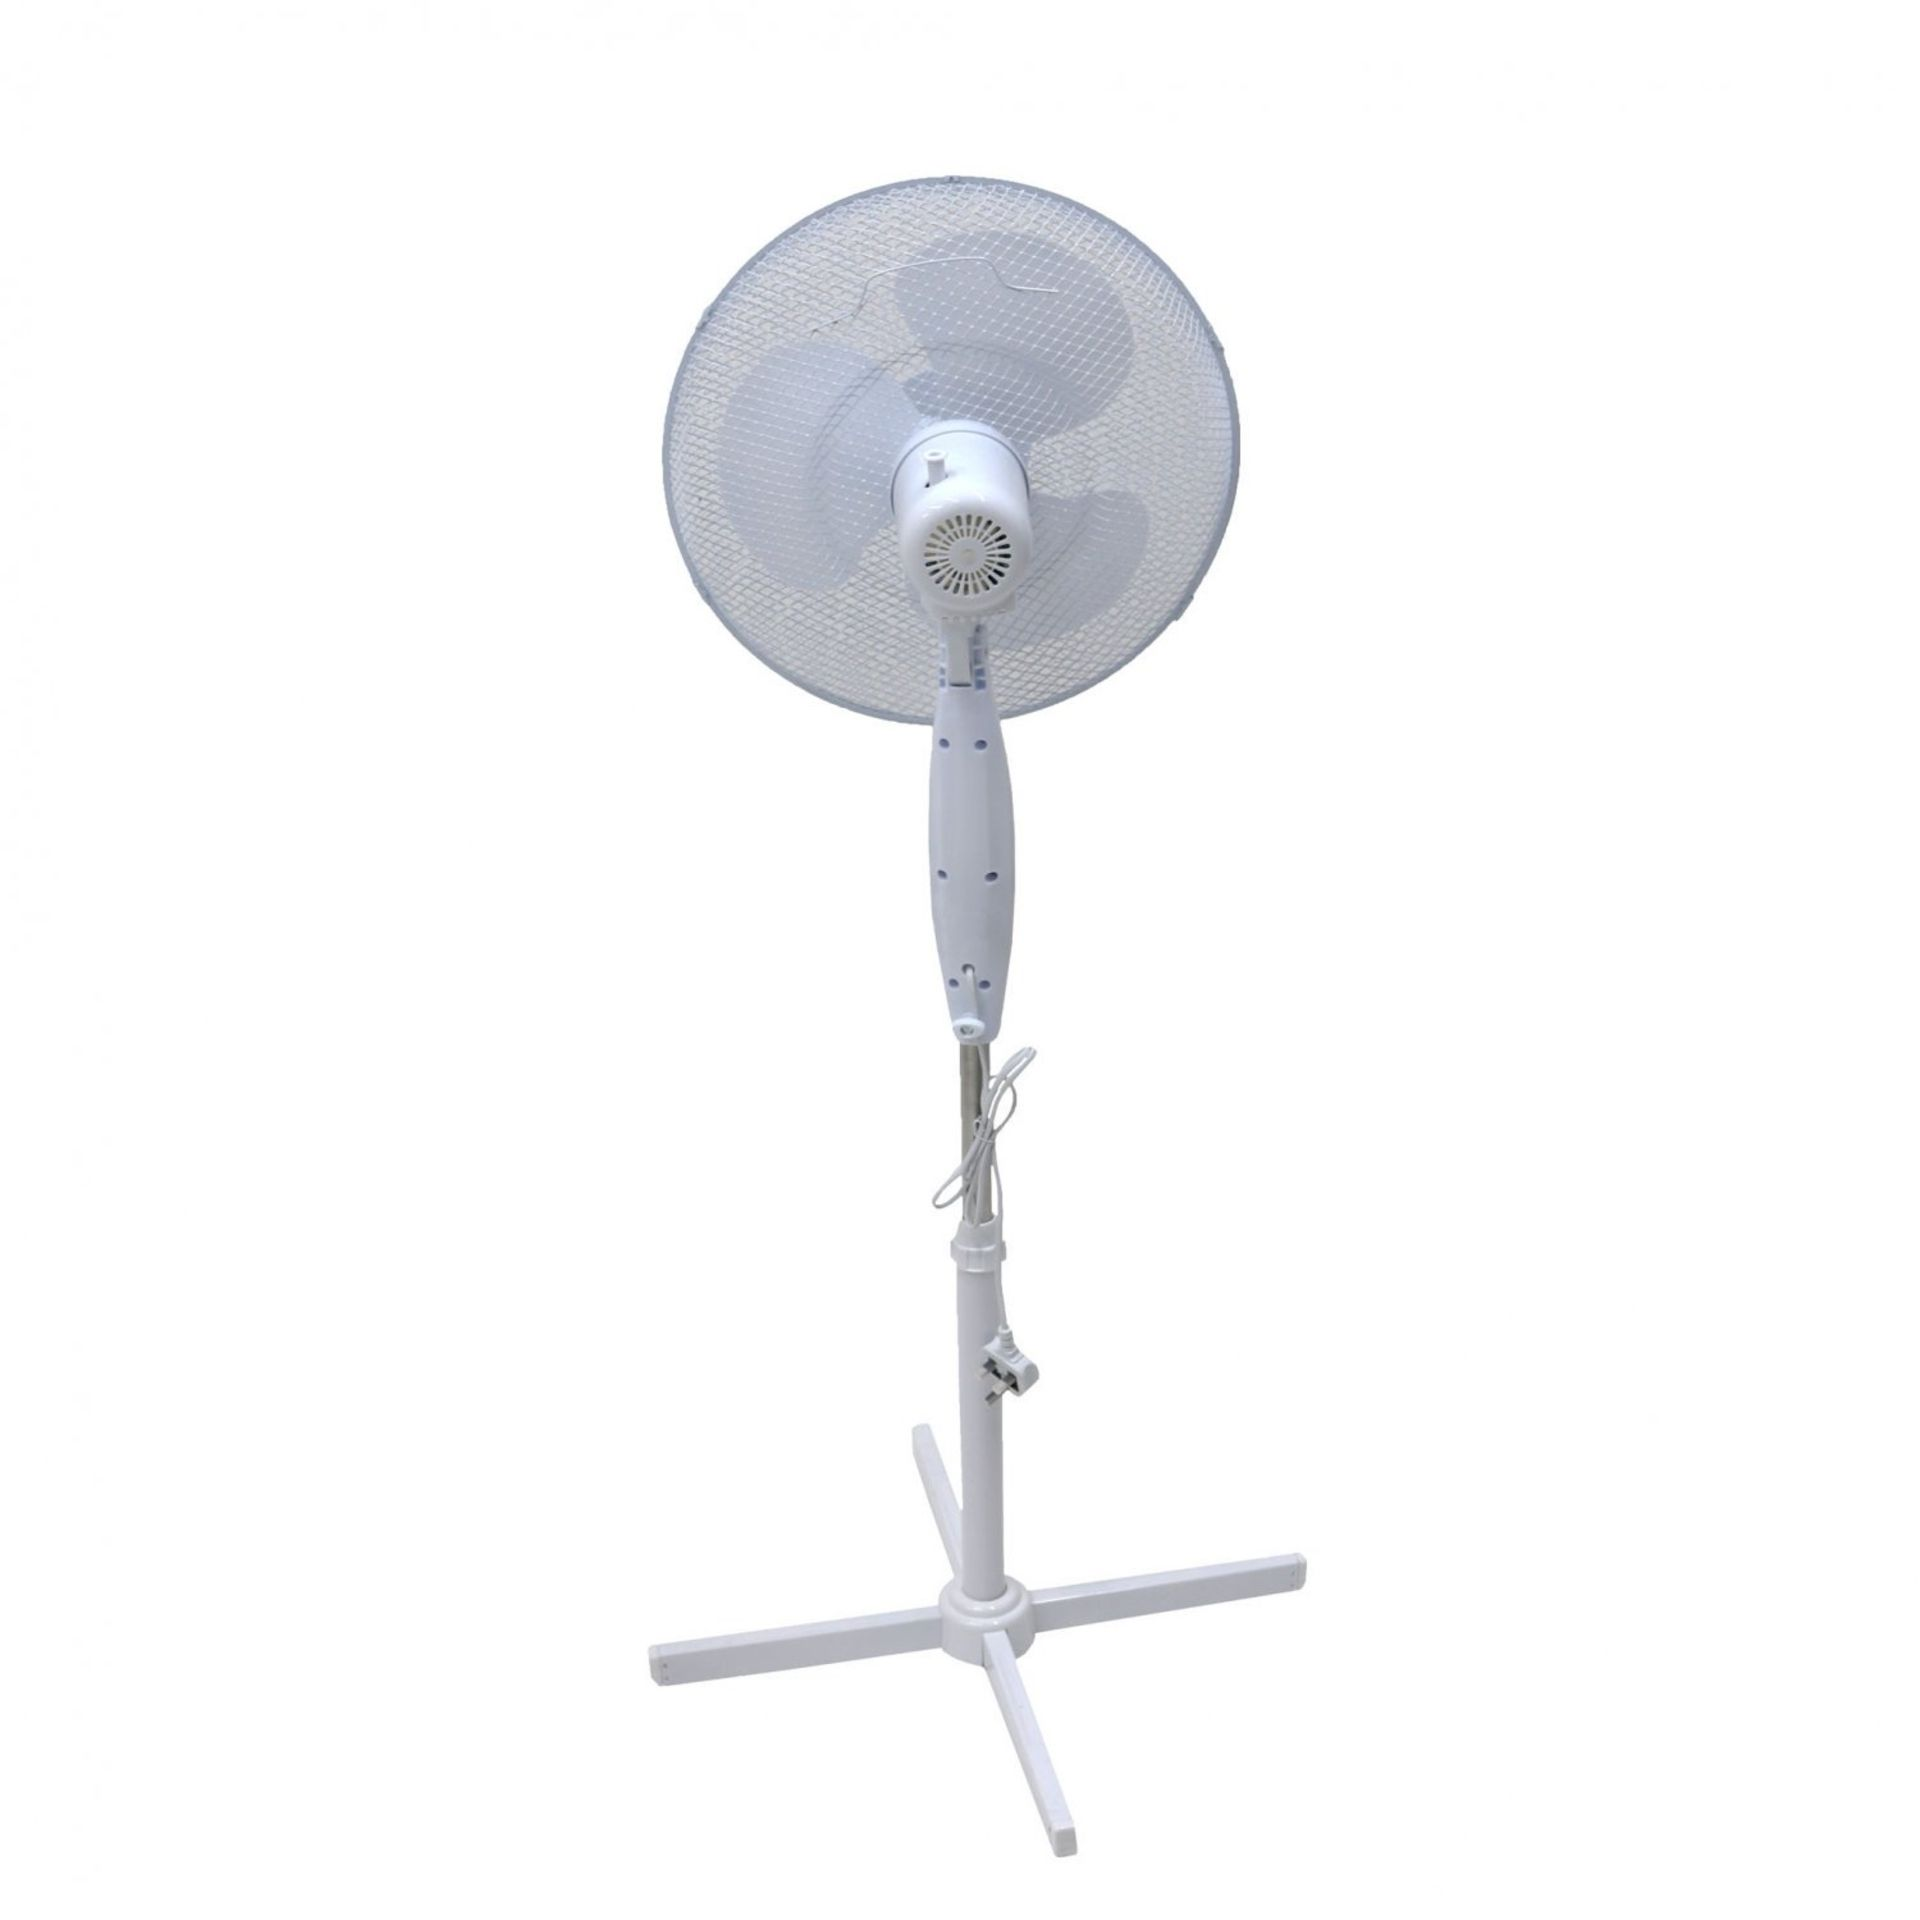 "Lot 187 - (RL120) 16"" Oscillating Pedestal Electric Fan The fan head oscillates and tilts which m..."